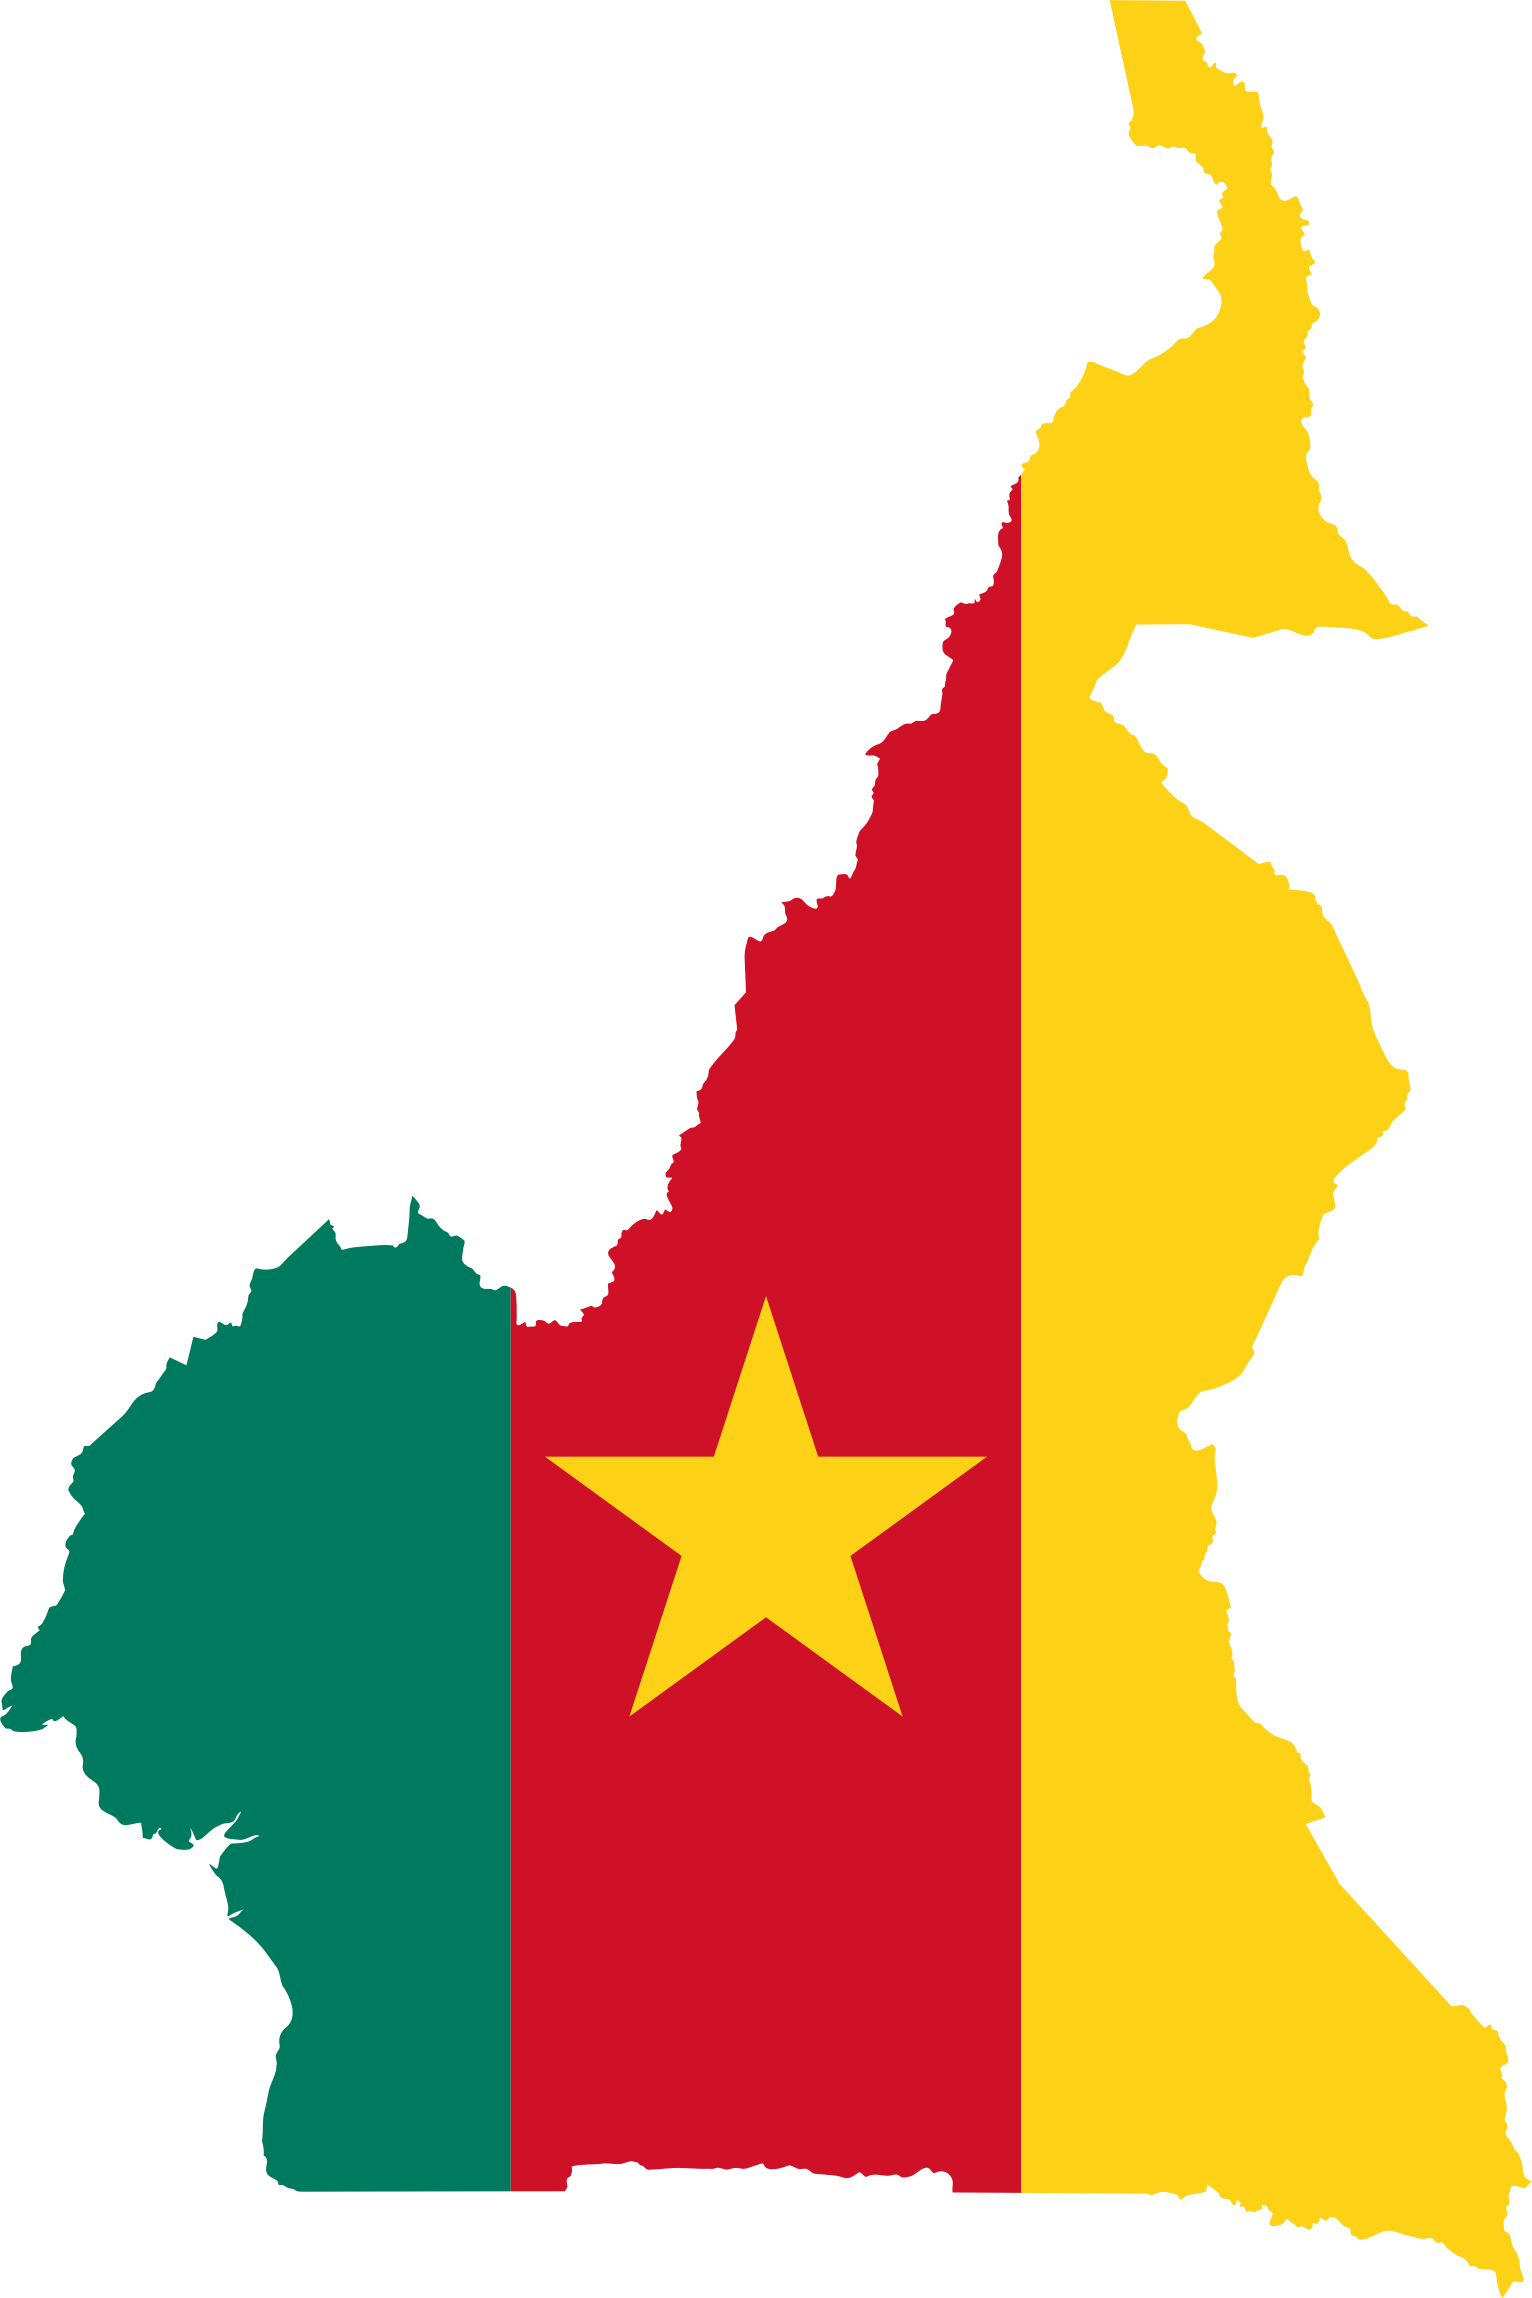 Cameroon Flag Map by GDJ